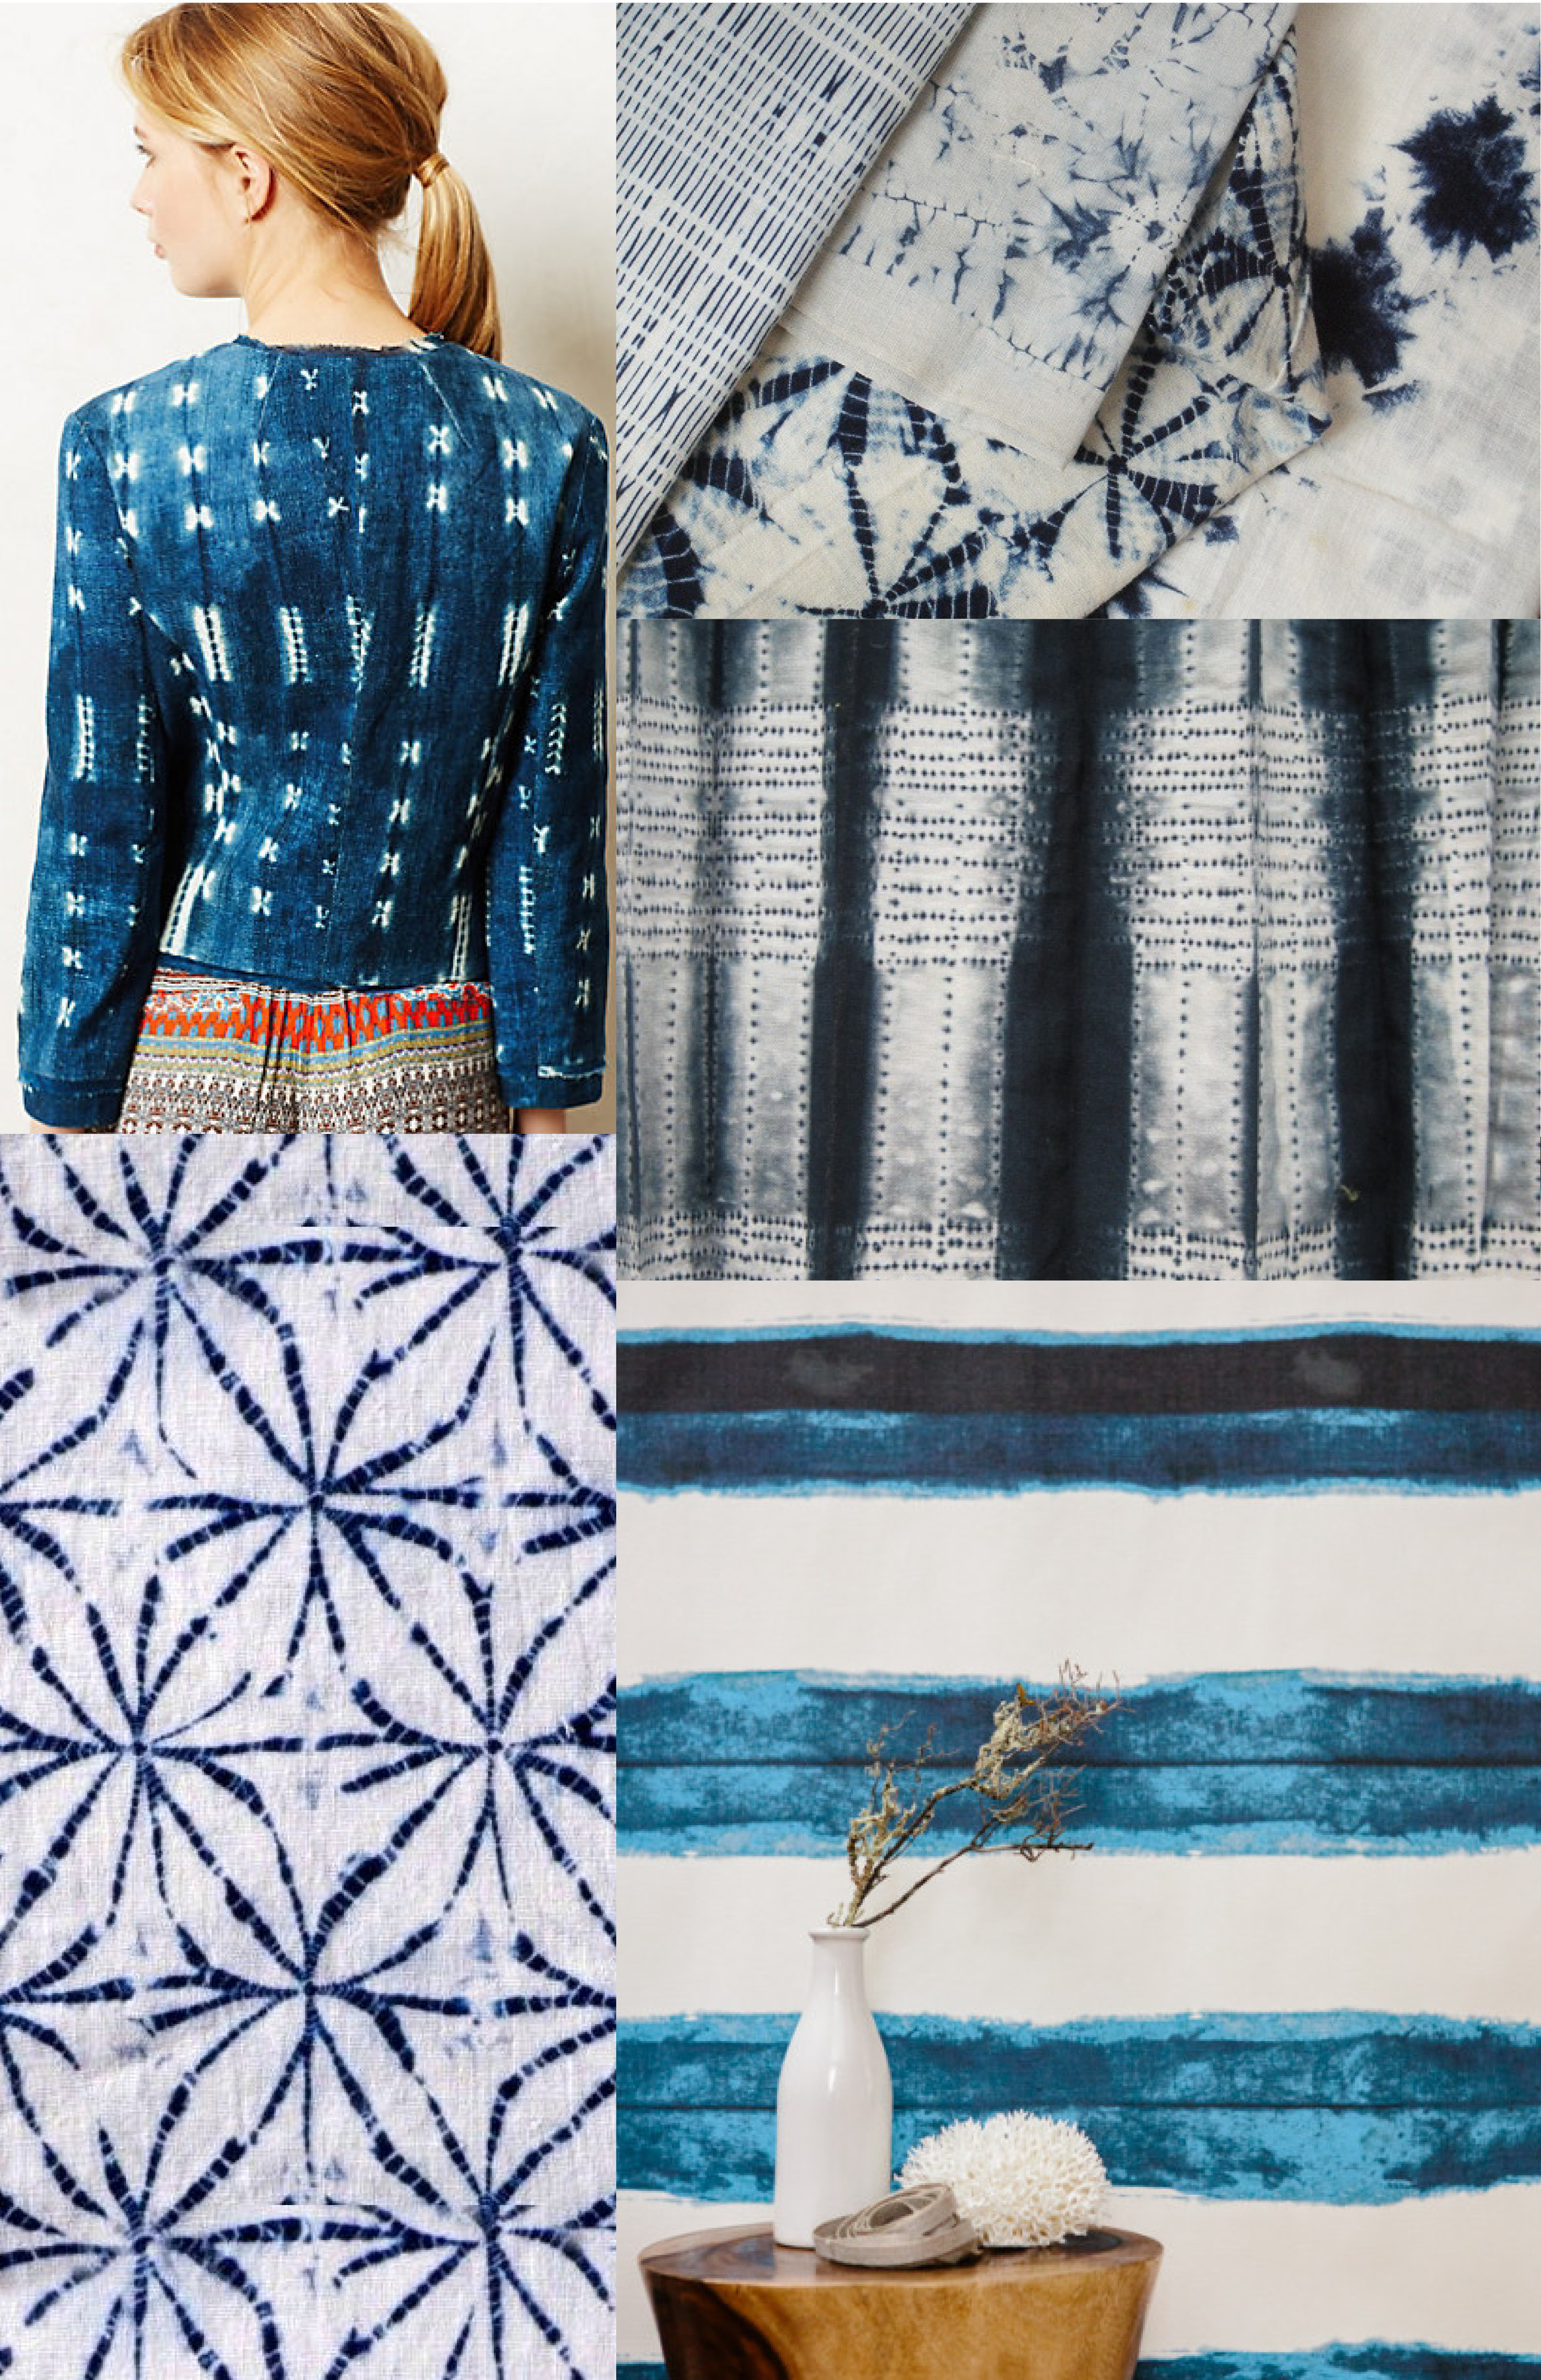 I know I've been a bit behind on my trend boards - with NeoCon approaching it's been busy! This board is a tribute to a lost love of mine - Shibori! I've been seeing it popping up left and right. Tie-dye's more sophisticated cousin, shibori honors traditional dying techniques.